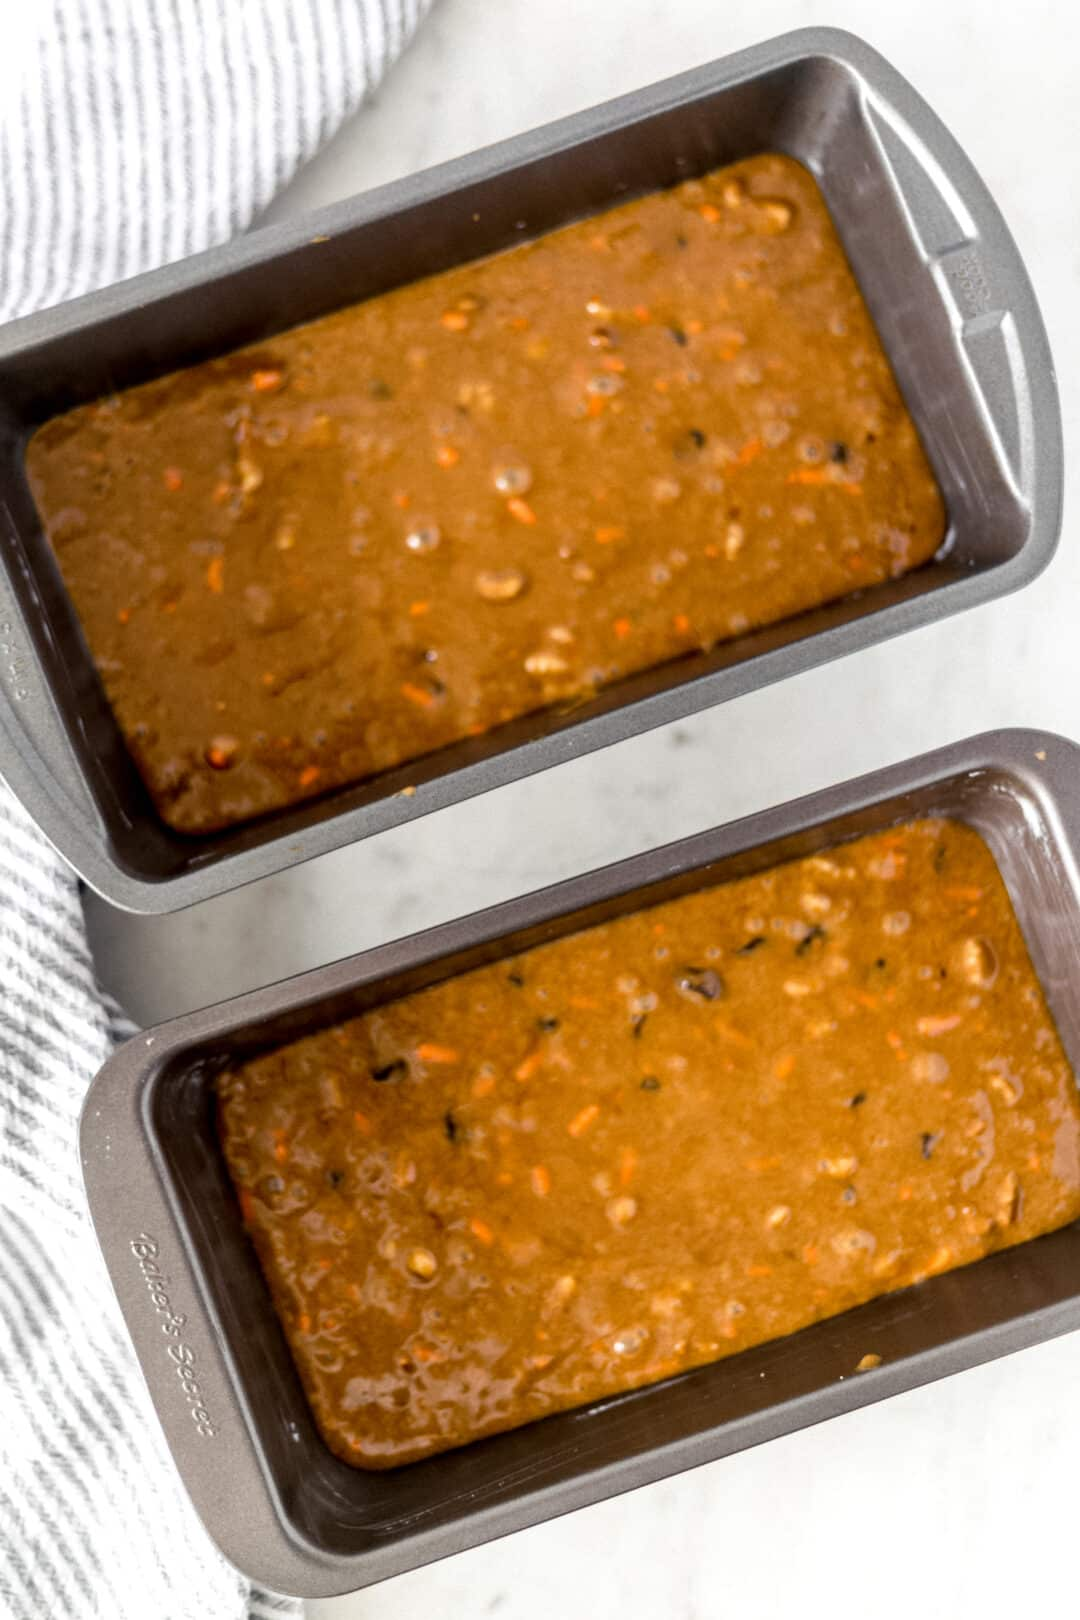 uncooked carrot raisin bread poured into two loaf pans for baking